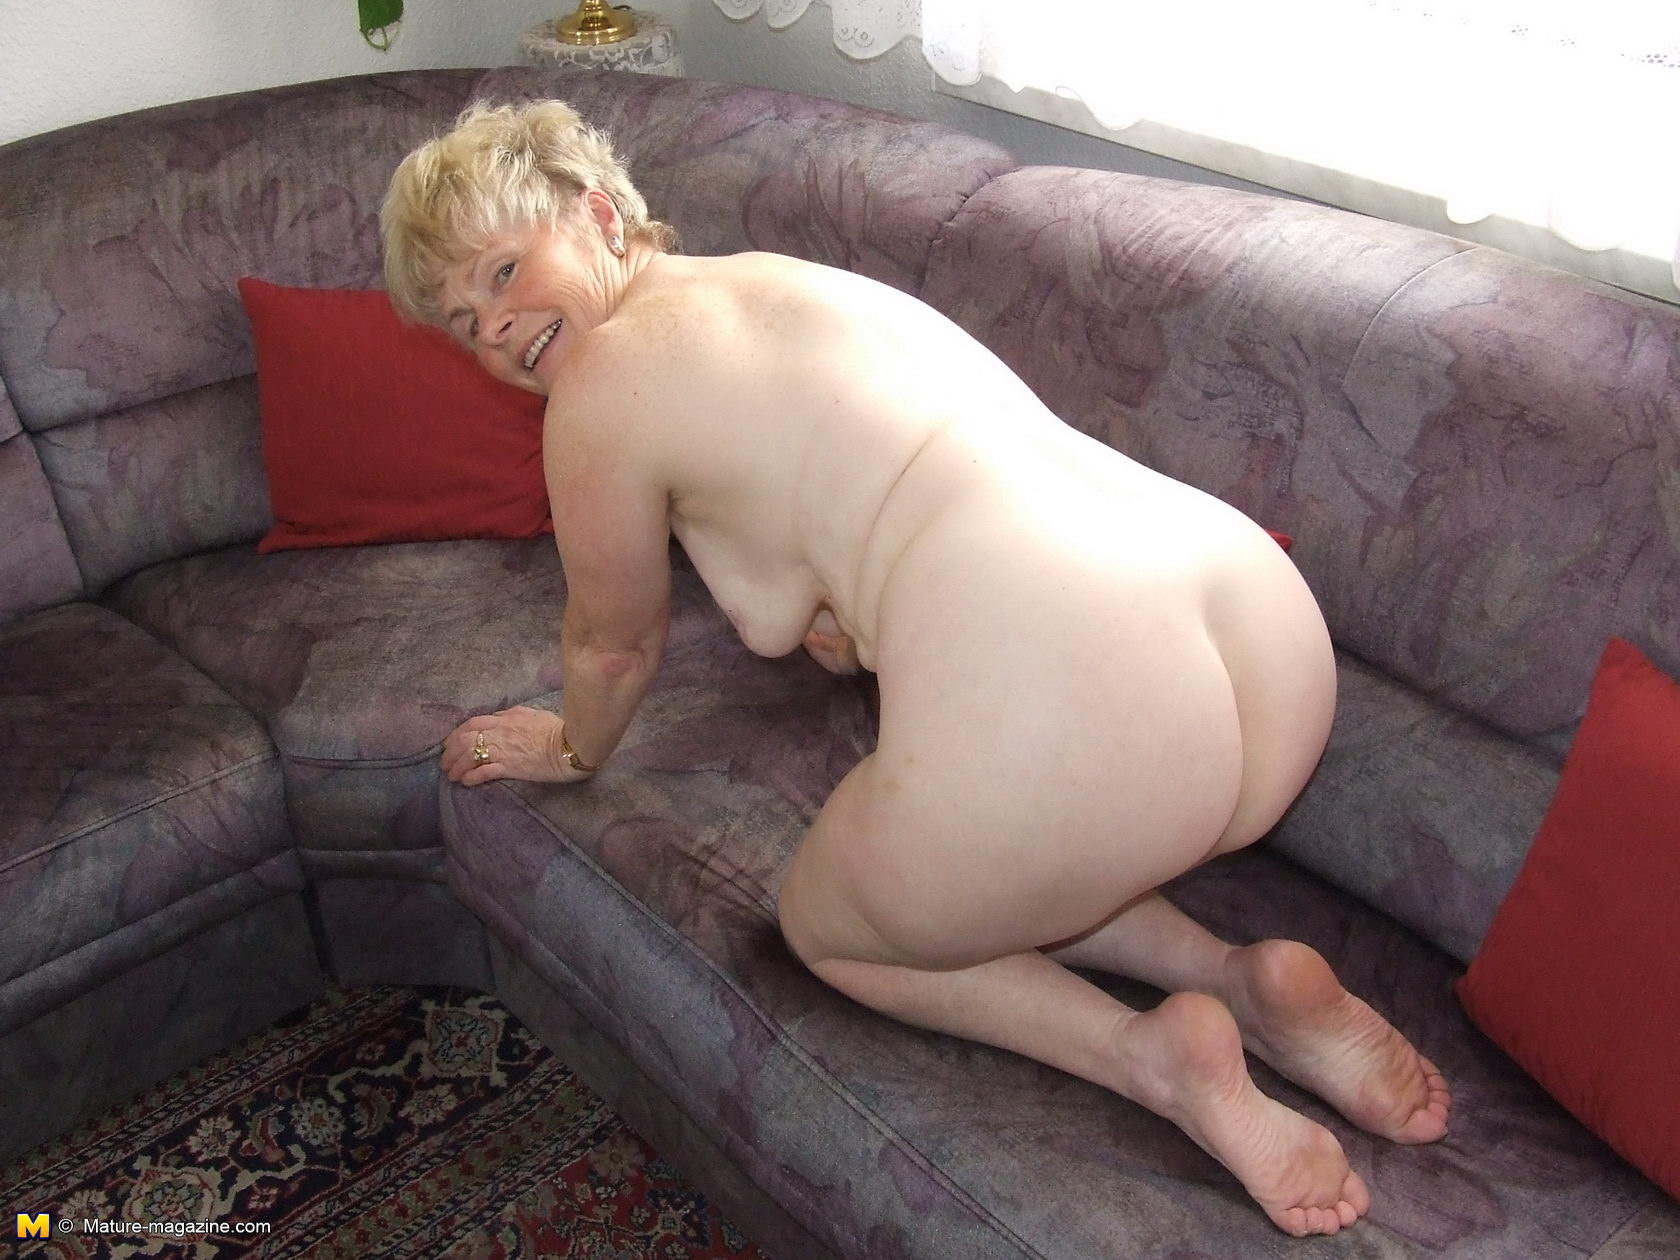 Hot mature lady shows her mature body - Porn Video